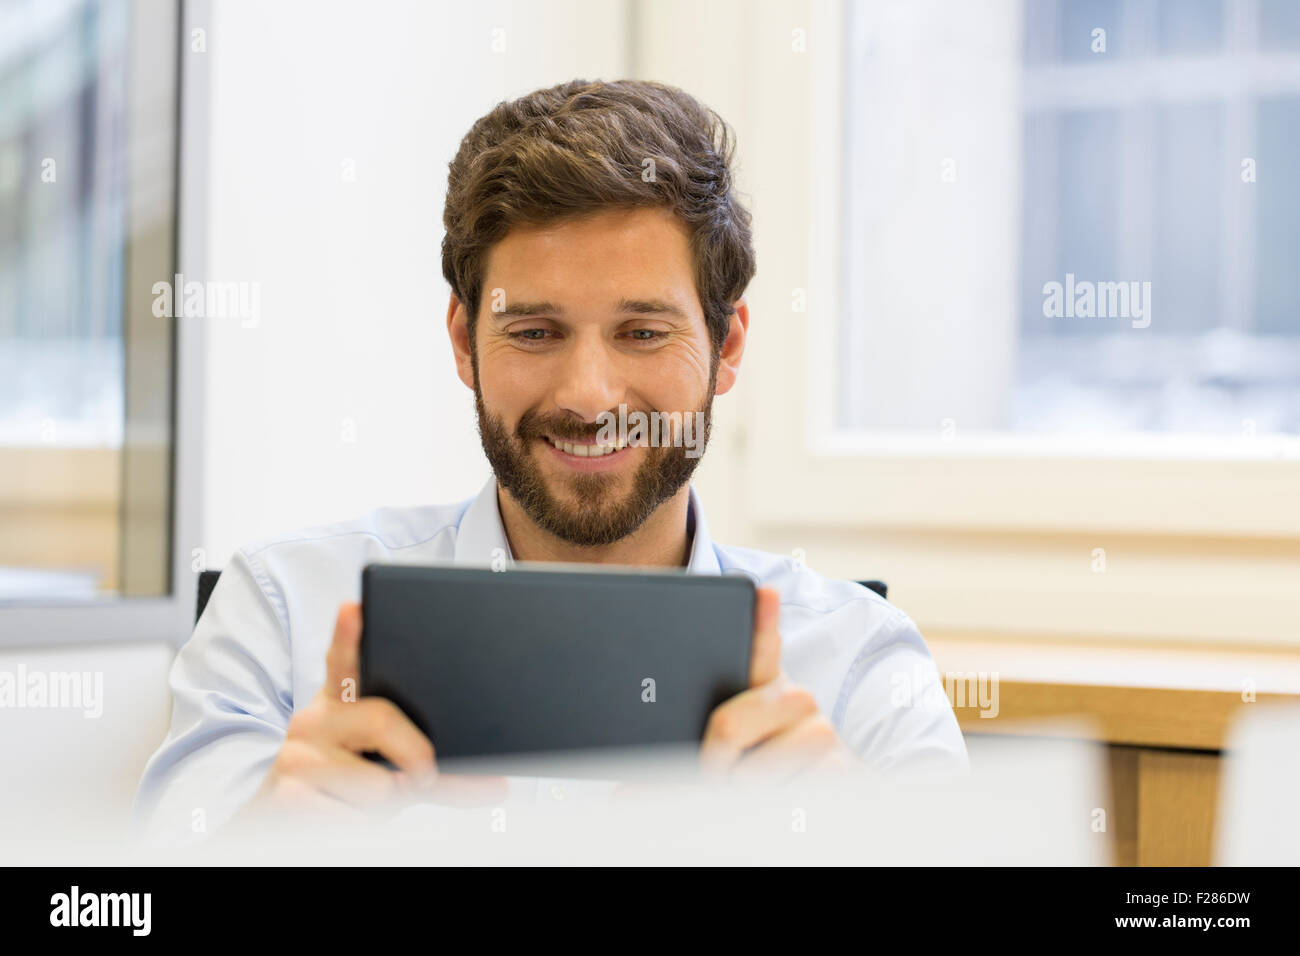 Cheering businessman using digital tablet in office Banque D'Images